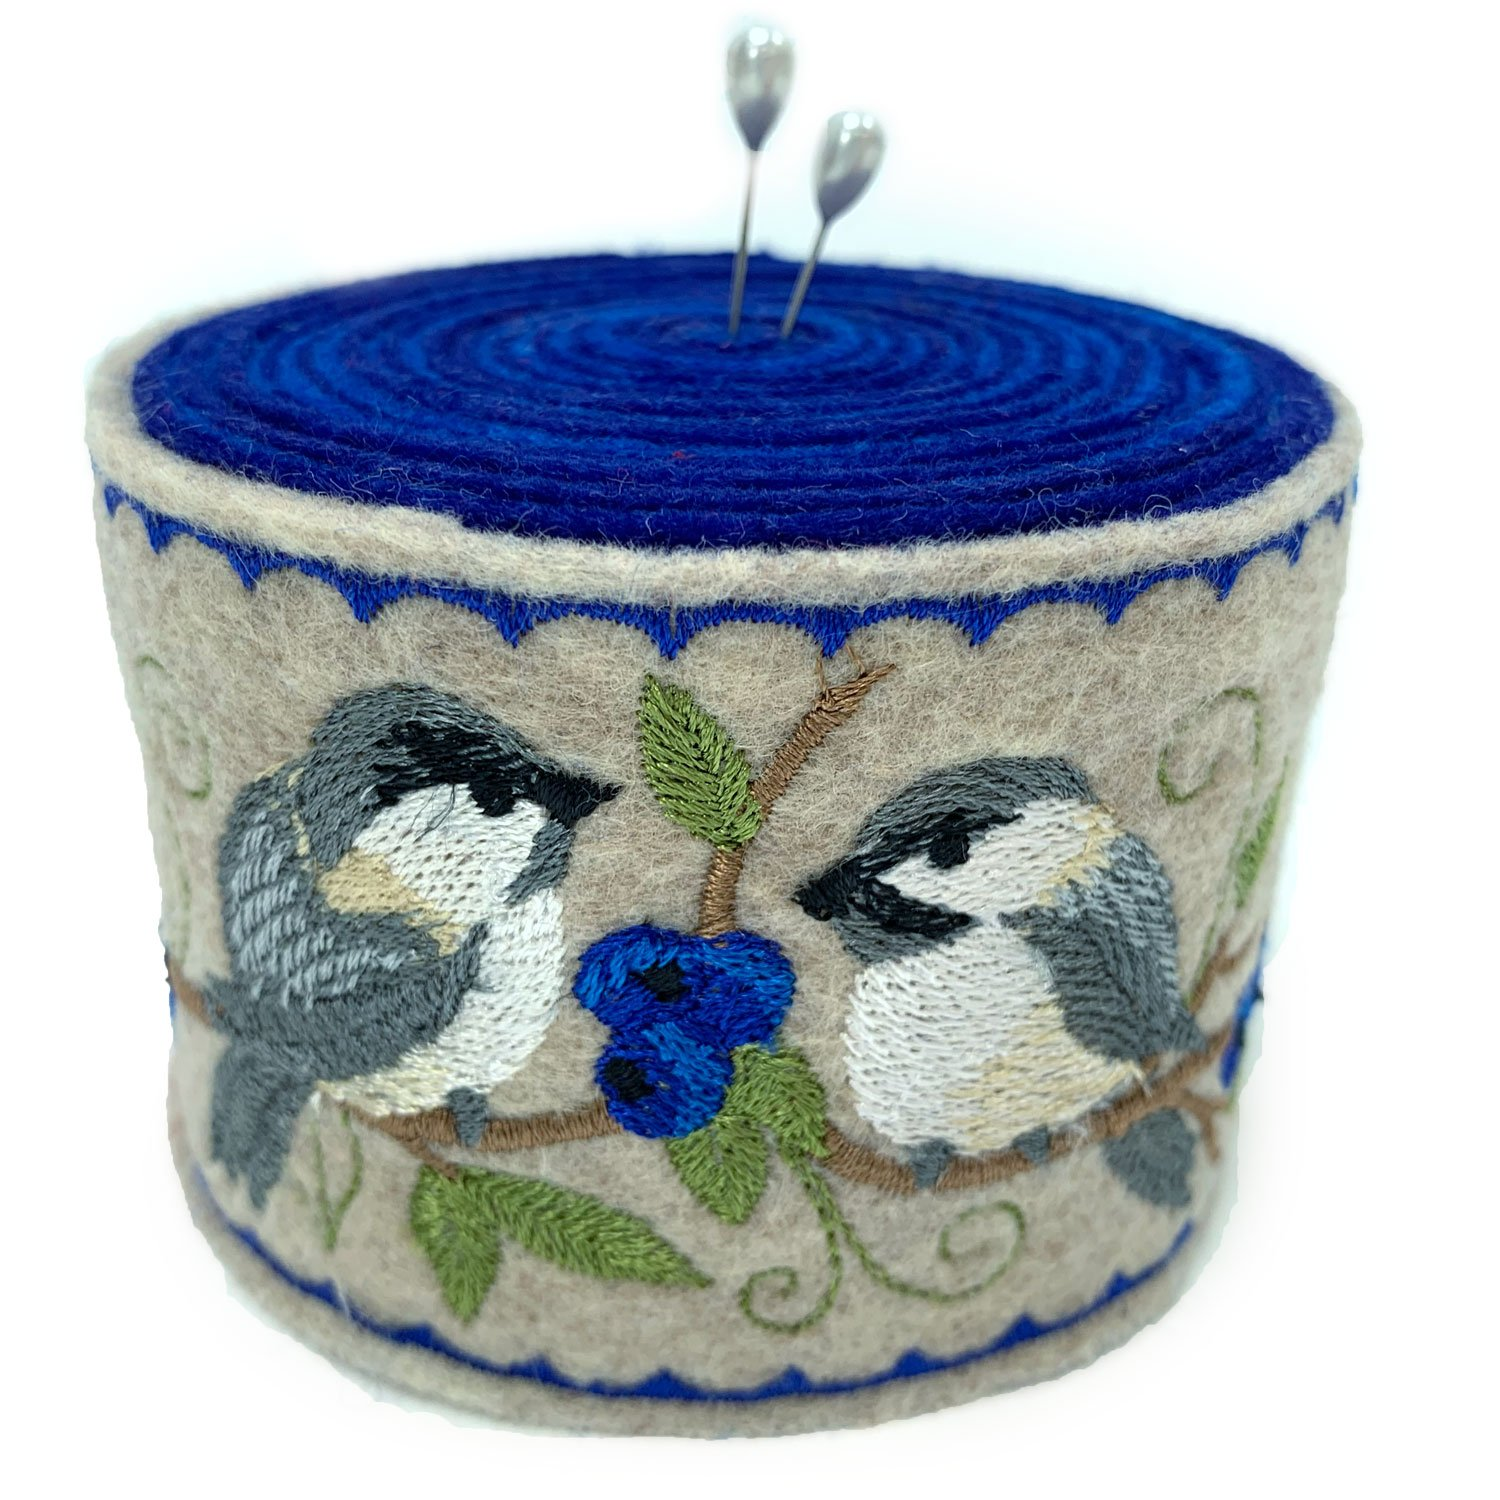 Embroidered Felt Pincushion Chickadees